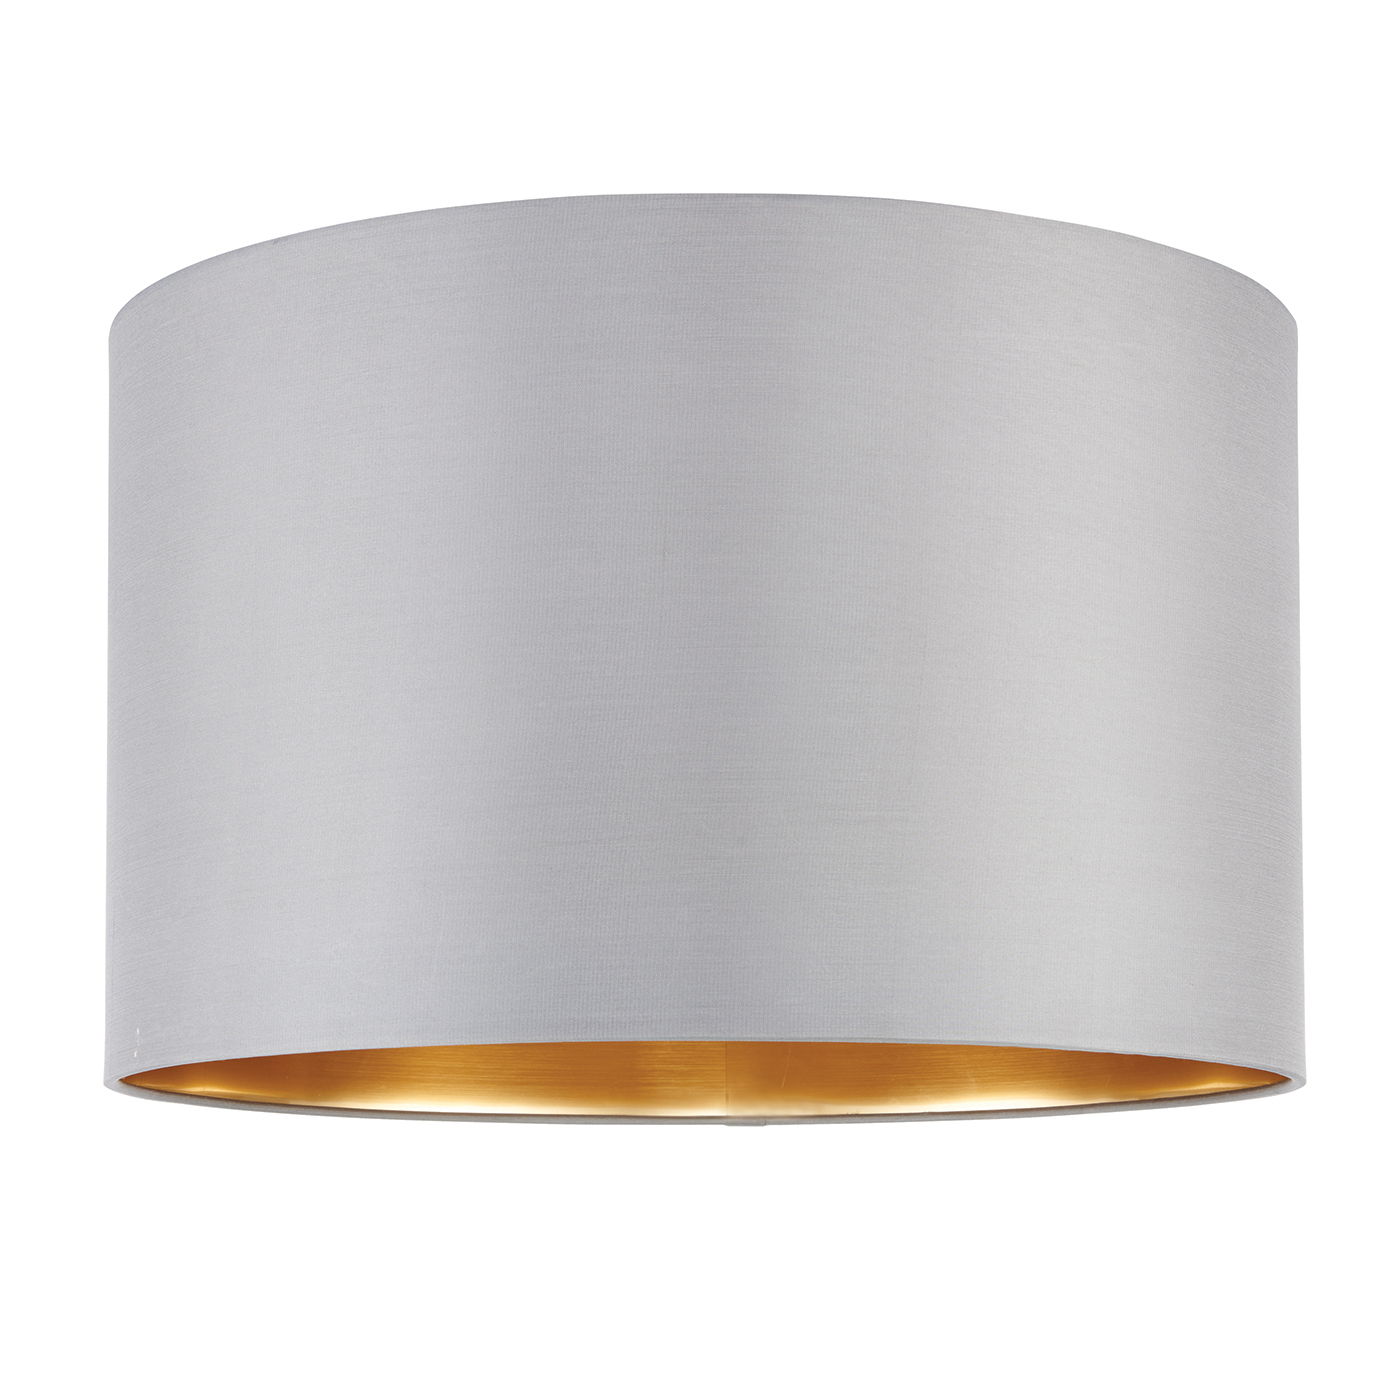 Endon Boutique lampshade 16 inch Slate grey silk brushed gold 250mm H x 400mm D